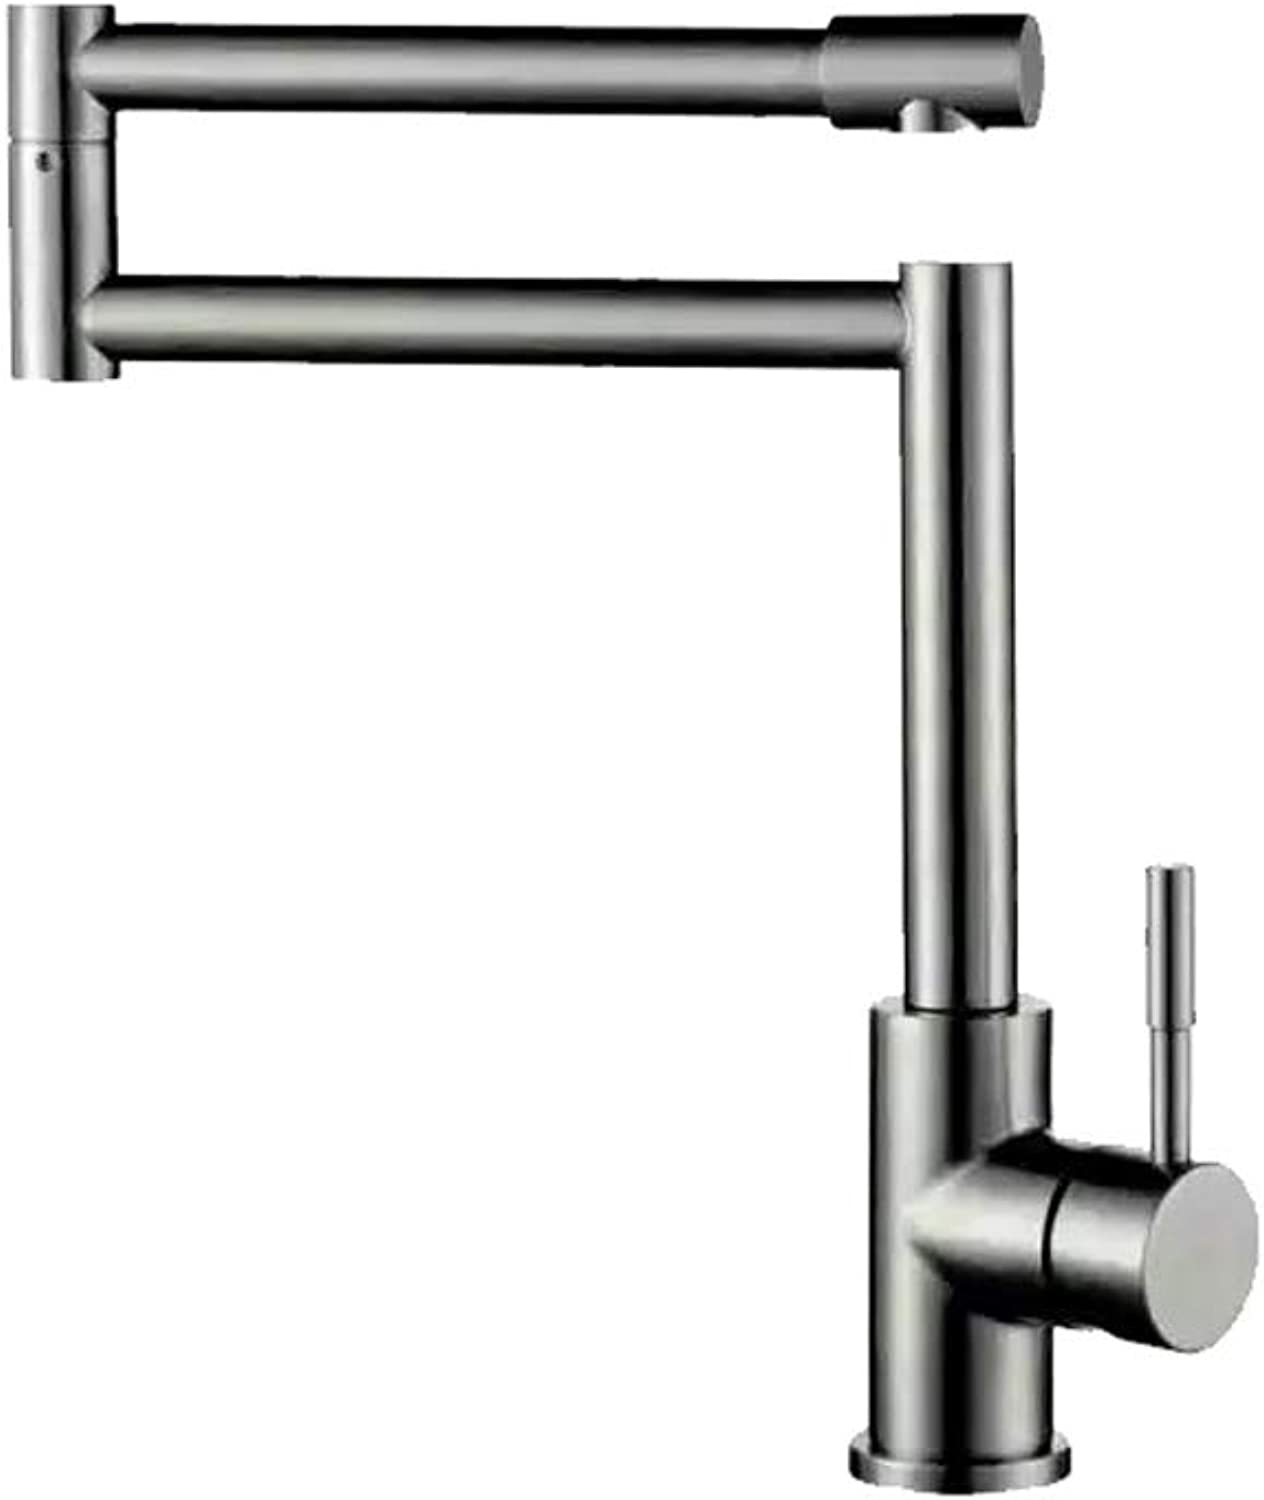 Faucet Kitchen Faucet Stainless Steel Faucet Bathroom Faucet Stainless Steel Kitchen Faucet Stainless Steel Sink Brushed High-bend redating Basin Faucet